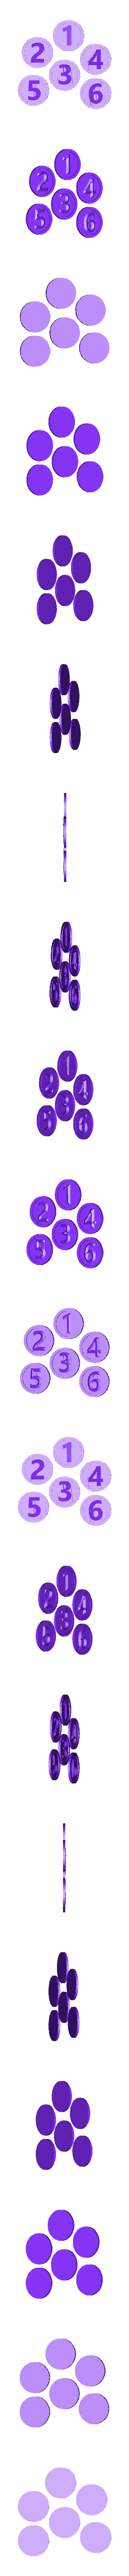 roll_numbers.stl Download free STL file Rotary punch - roll nr. label 20mm • Object to 3D print, FiveNights